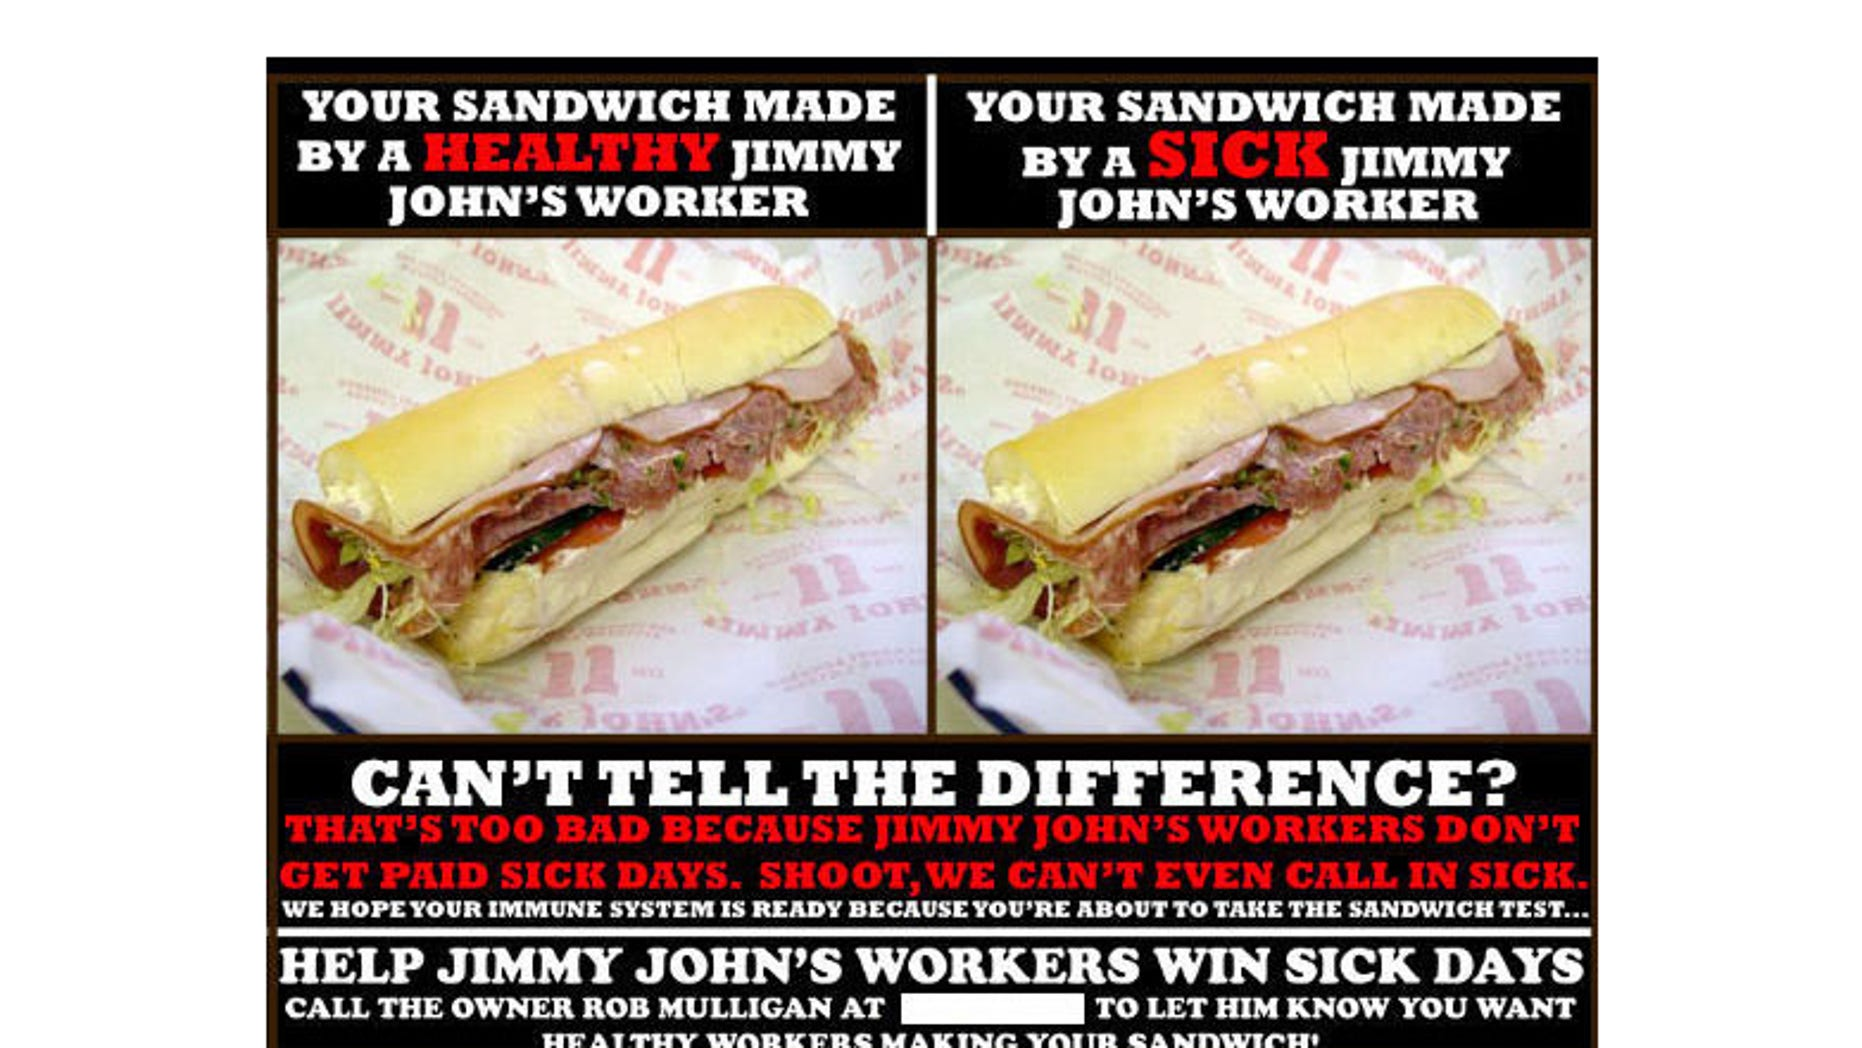 Even though workers at Jimmy John's franchises in Minneapolis hung posters around town warning that sandwiches could be made by flu-stricken workers, their employer didn't have the right to fire them, according to the National Labor Relations Board. That was just one of several odd decisions the board made last year, say critics.